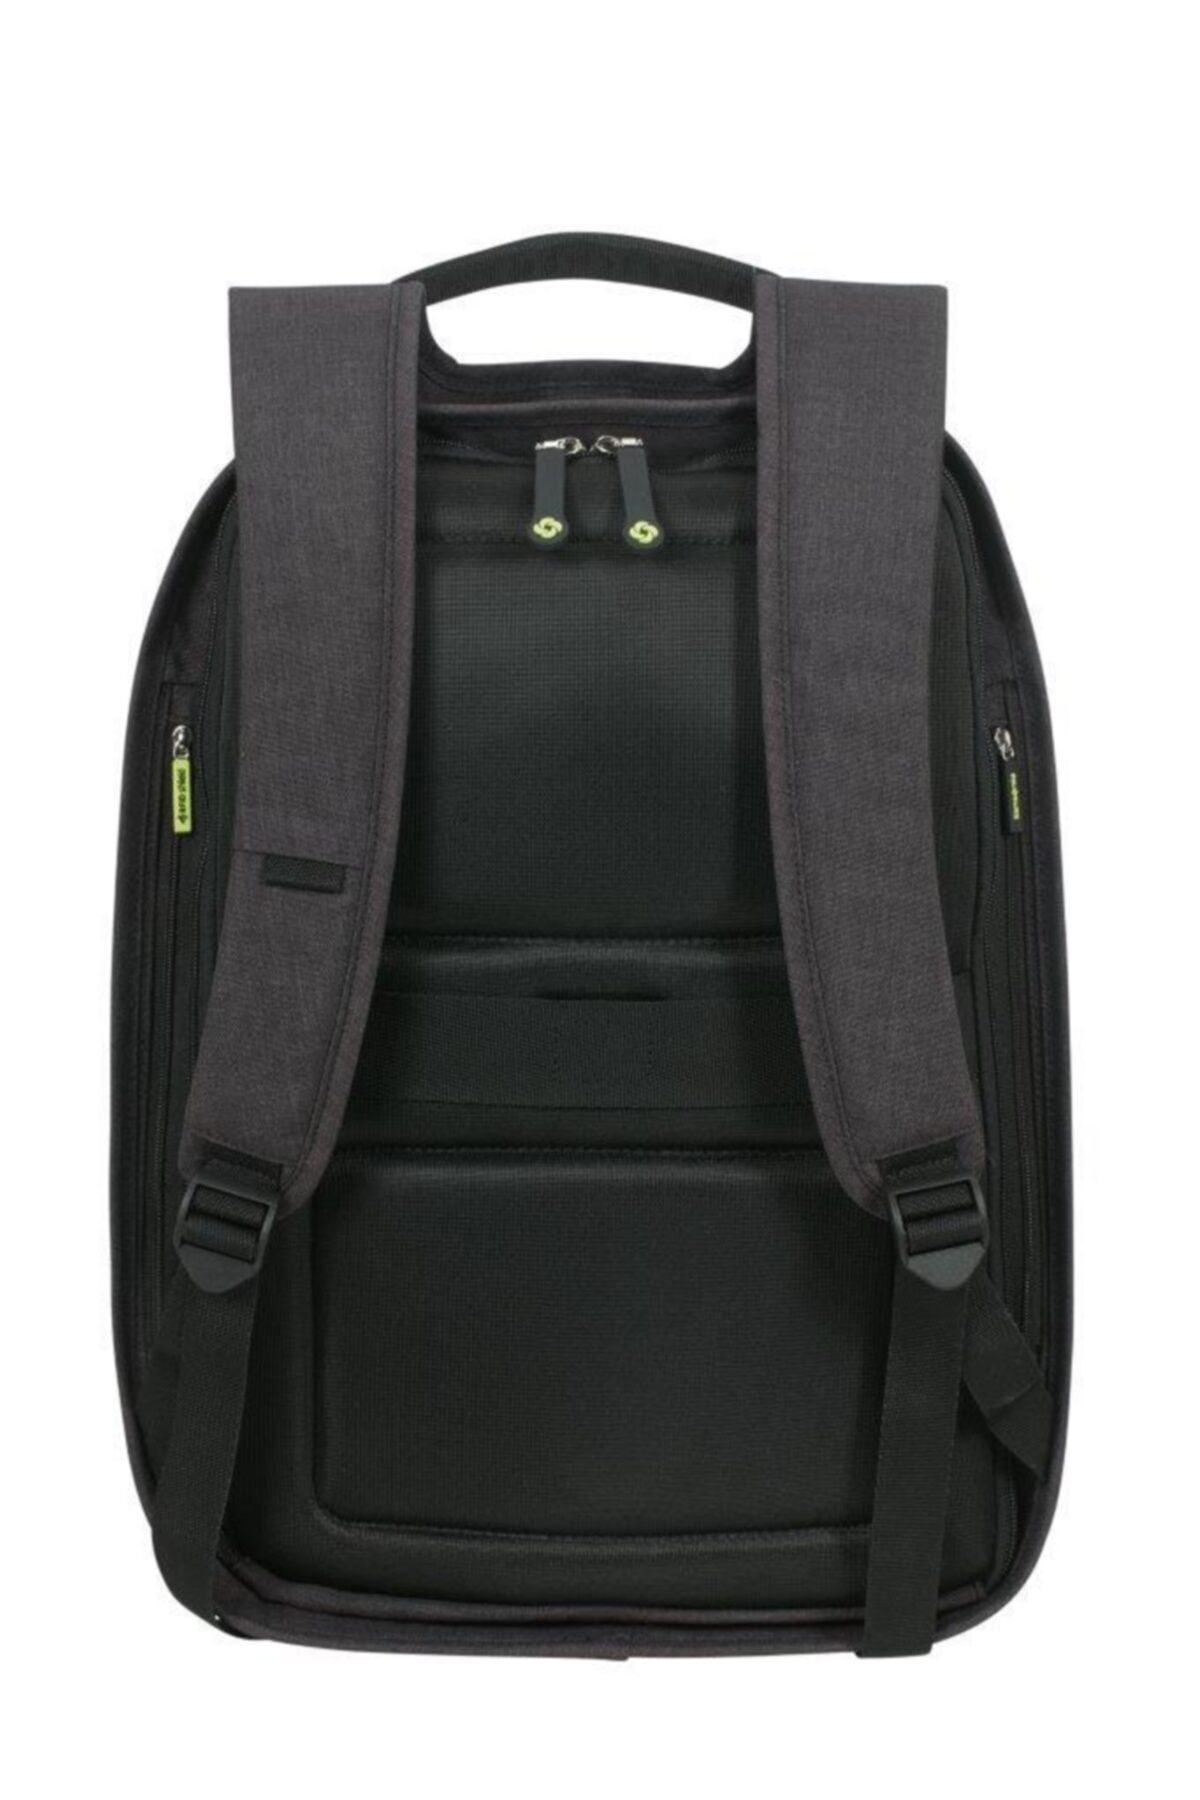 "Samsonite Samsonıte Ka6-09-001 15.6"" Securipak Notebook Sırt Çantası Siyah 2"